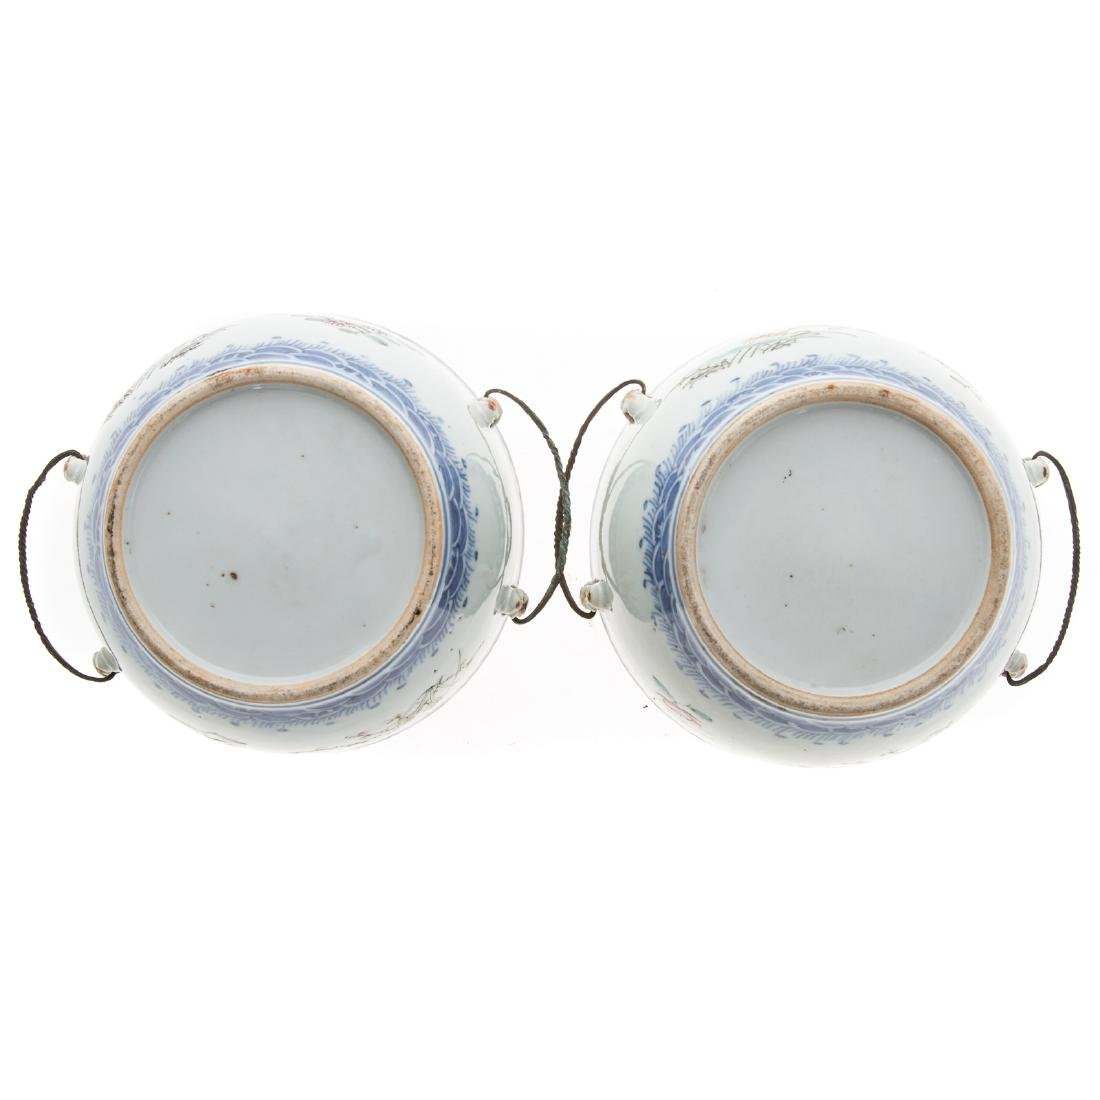 Pair Chinese Export hot water serving dishes - 6